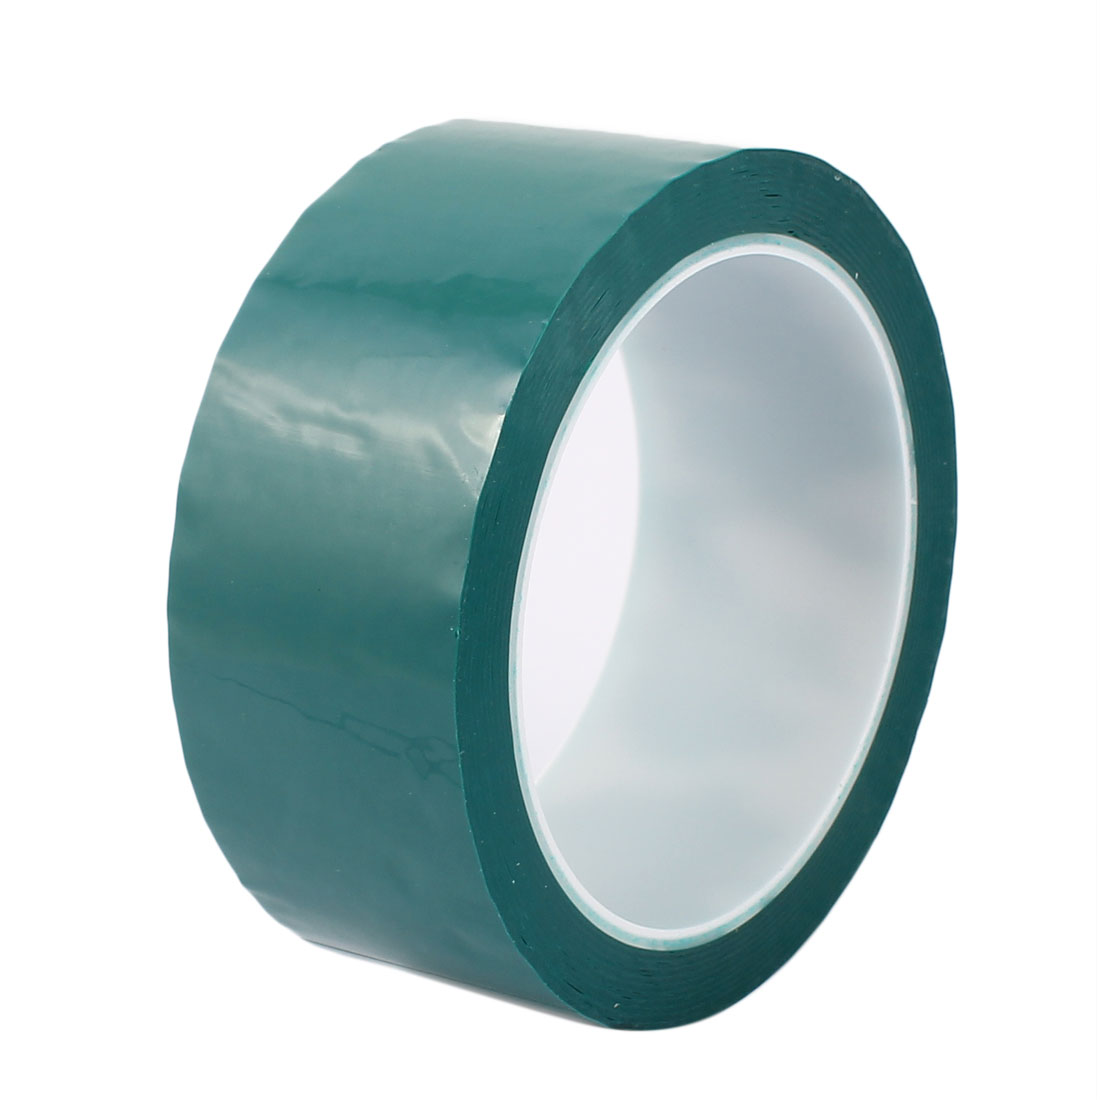 140mm Single Sided Strong Self Adhesive Mylar Tape 50M Length Logo Tape